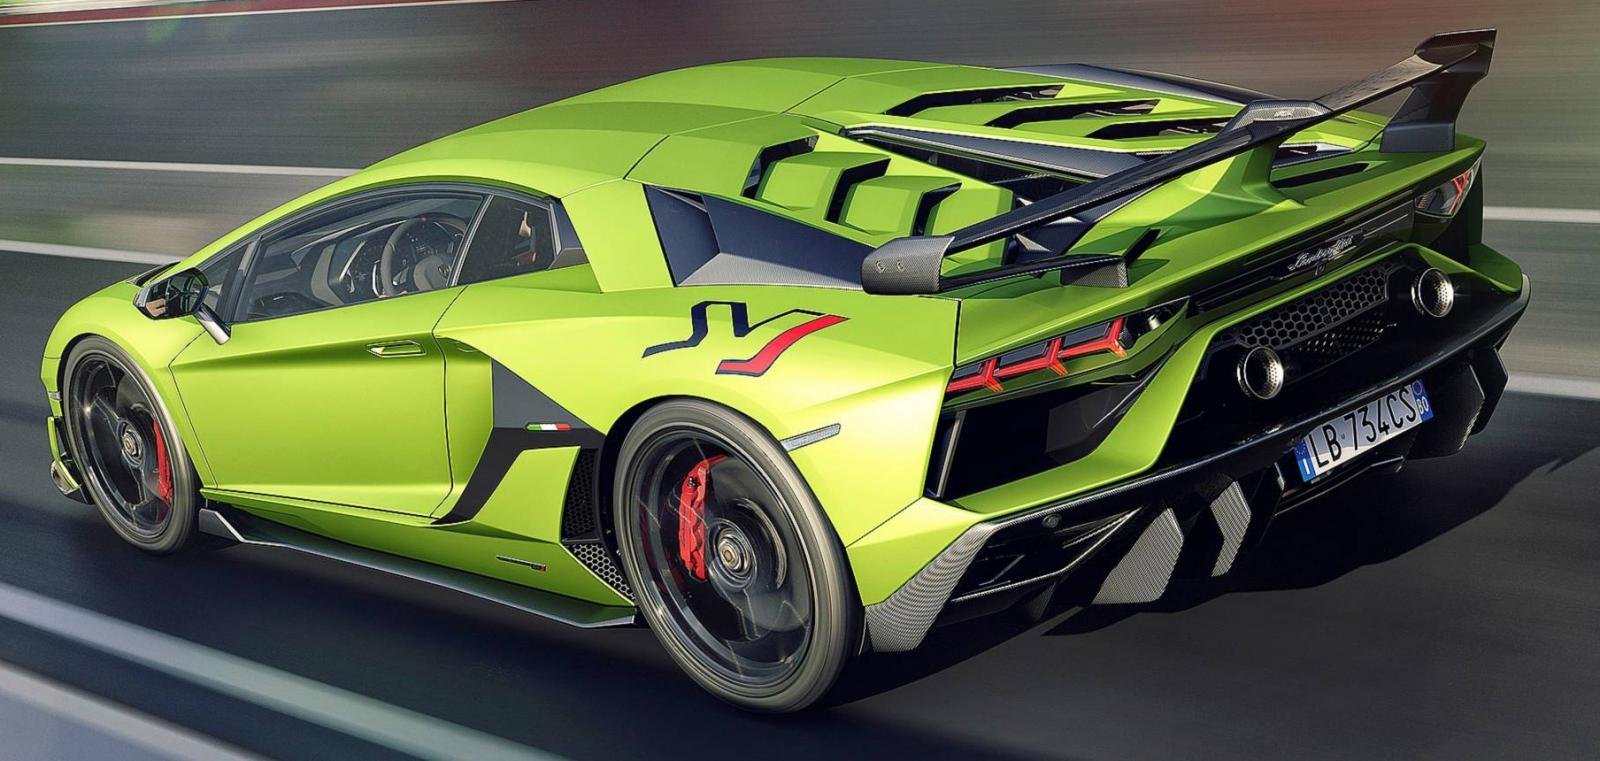 15 Most Expensive Cars in India - Lamborghini Aventador SVJ